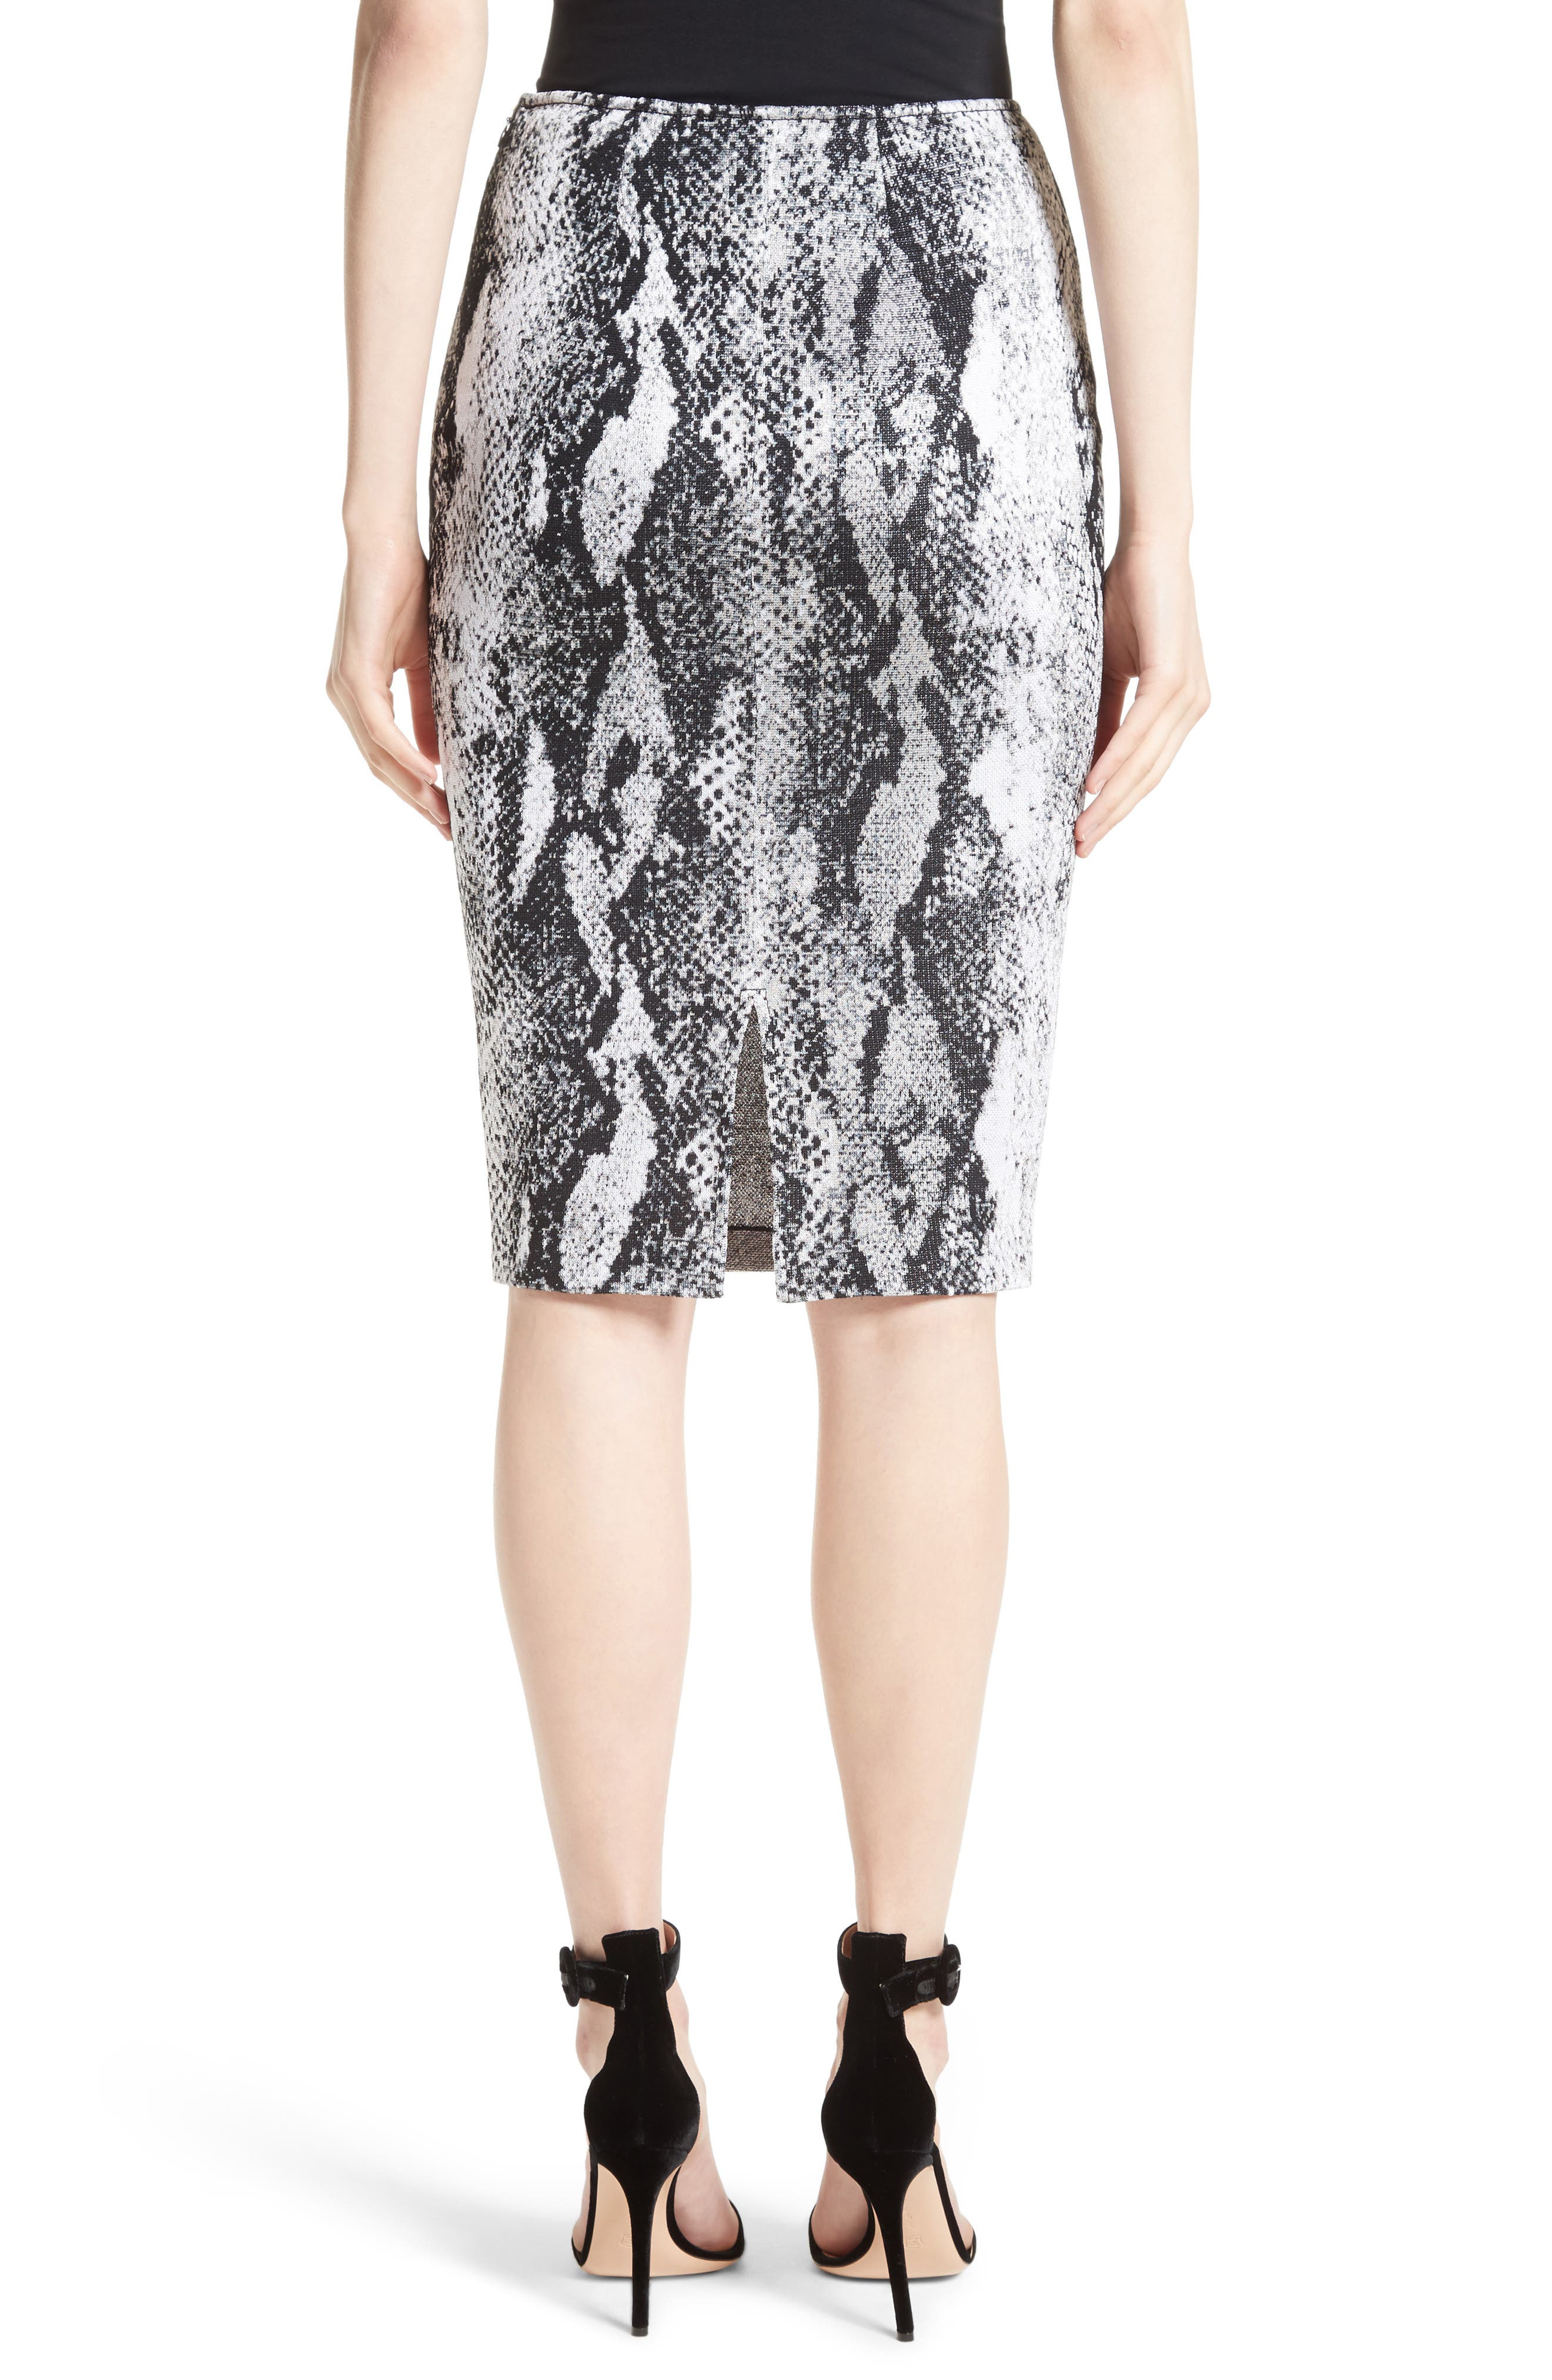 Raja Snakeskin Knit Pencil Skirt,                             Alternate thumbnail 2, color,                             050